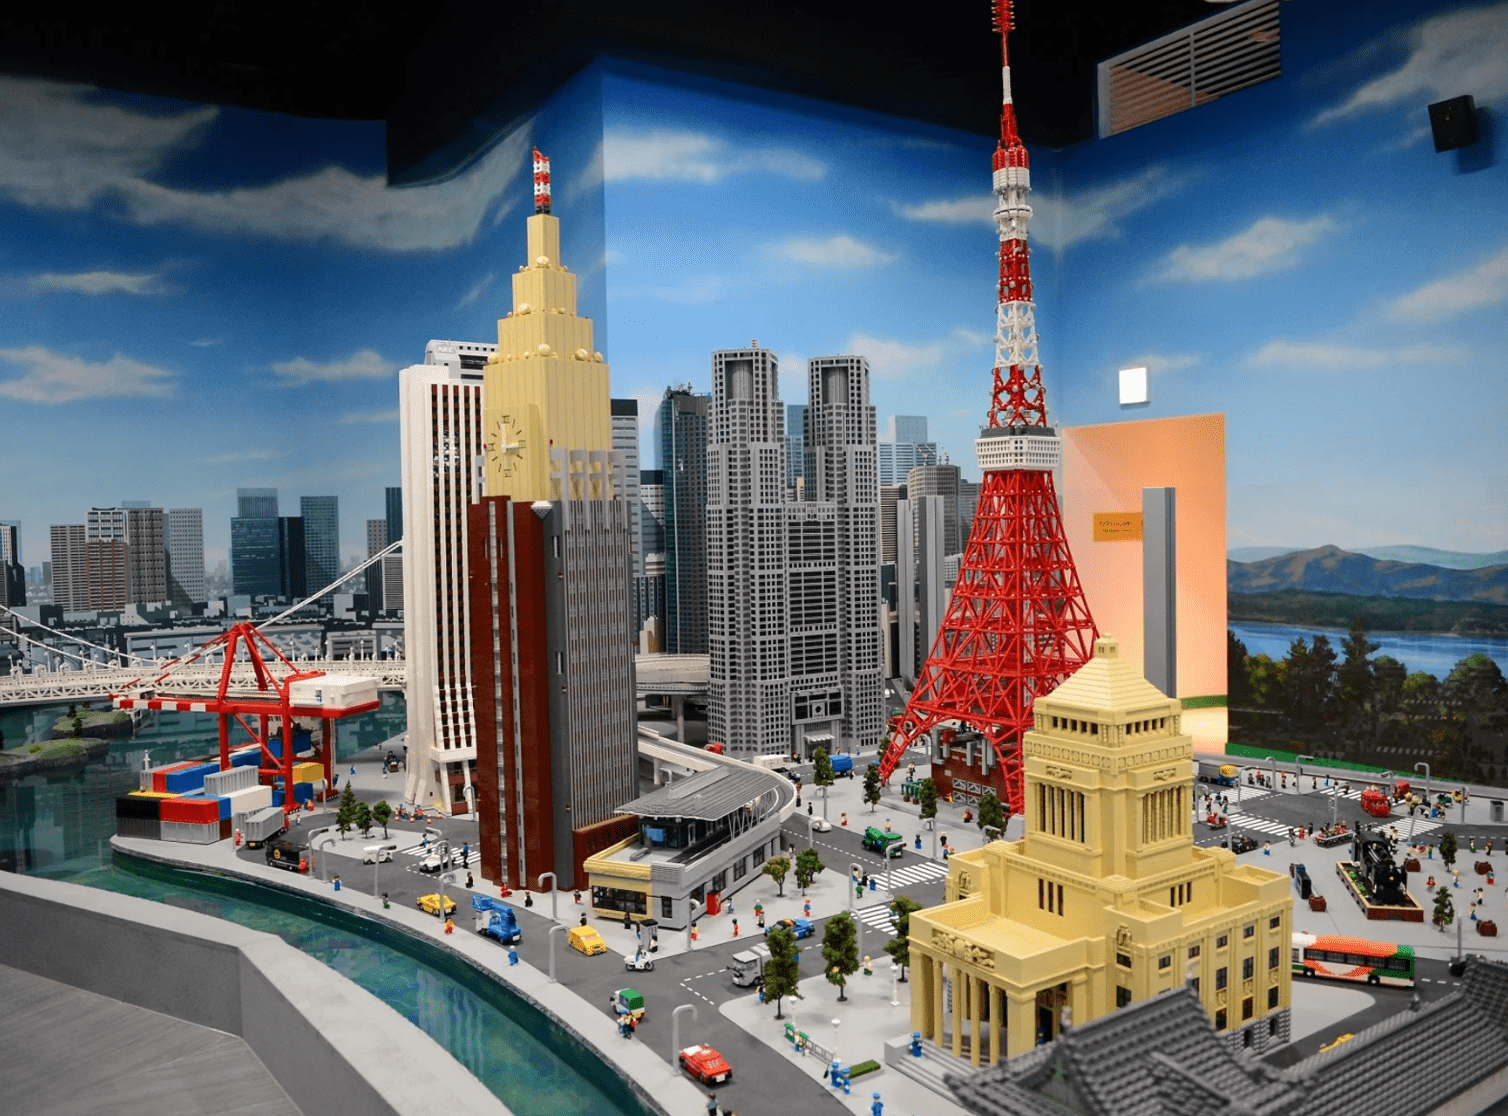 The town of Tokyo made with Lego blocks